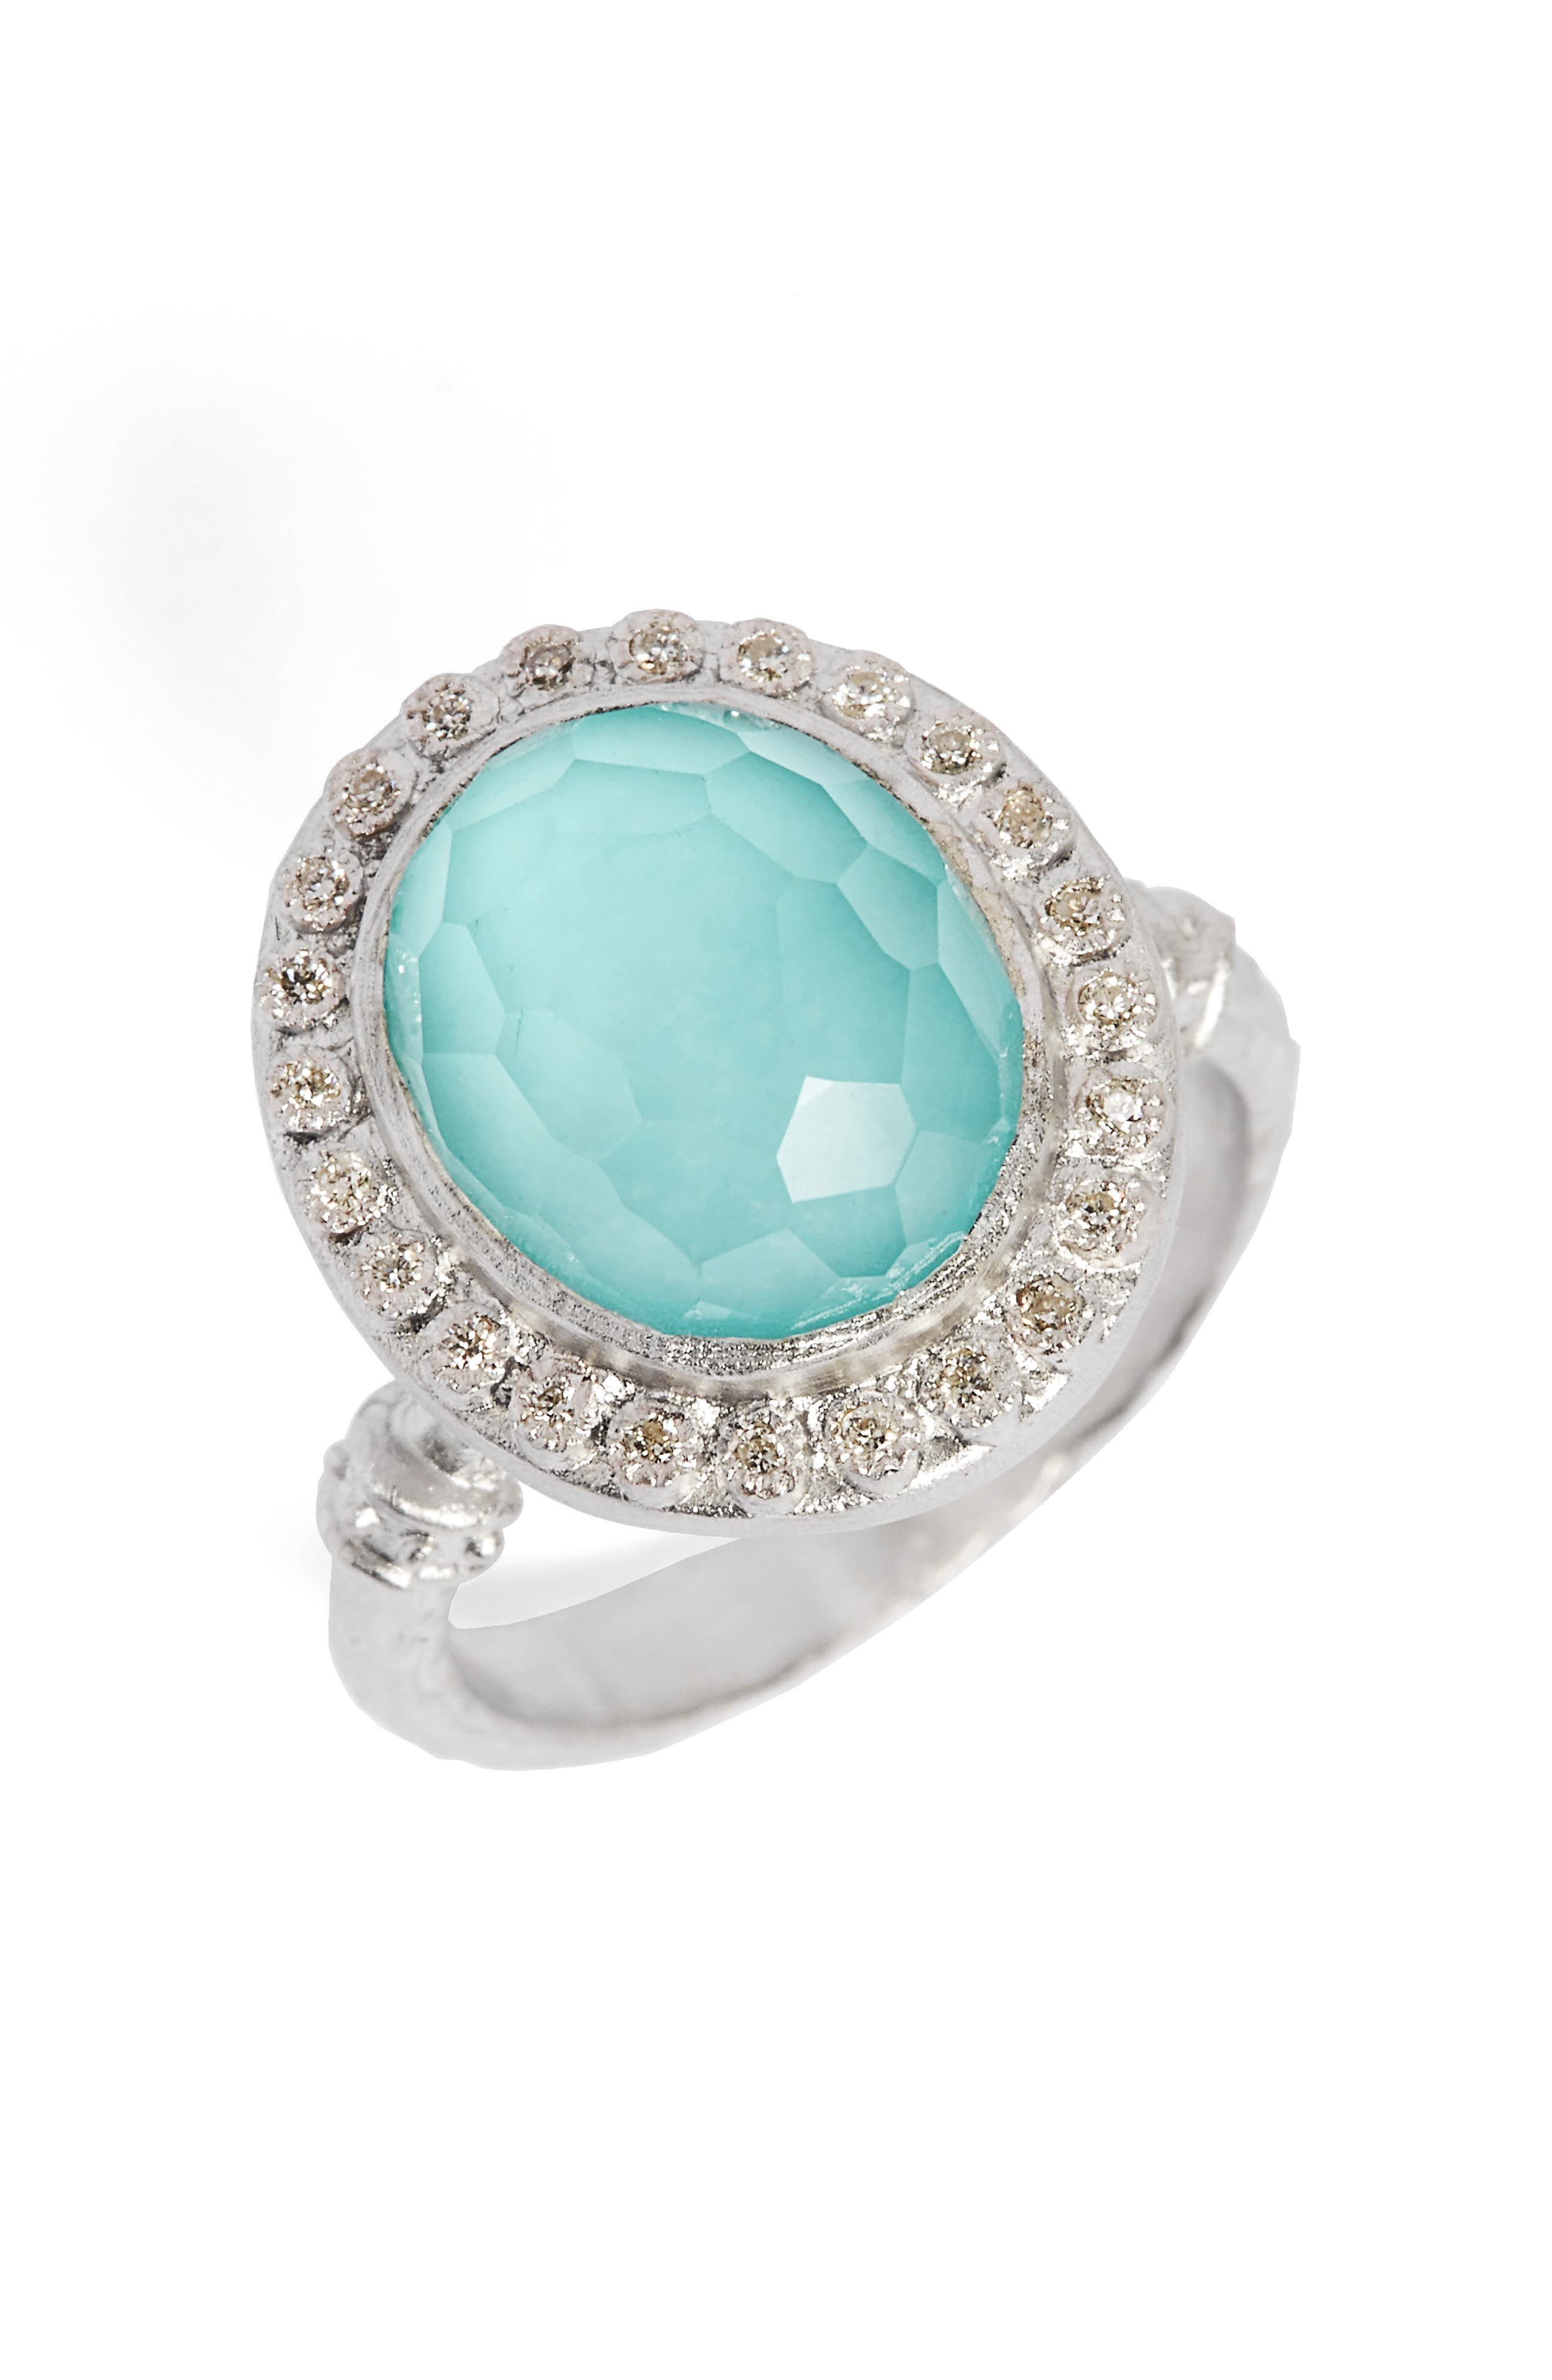 Alternate Image 1 Selected - Armenta New World Diamond & Turquoise Ring